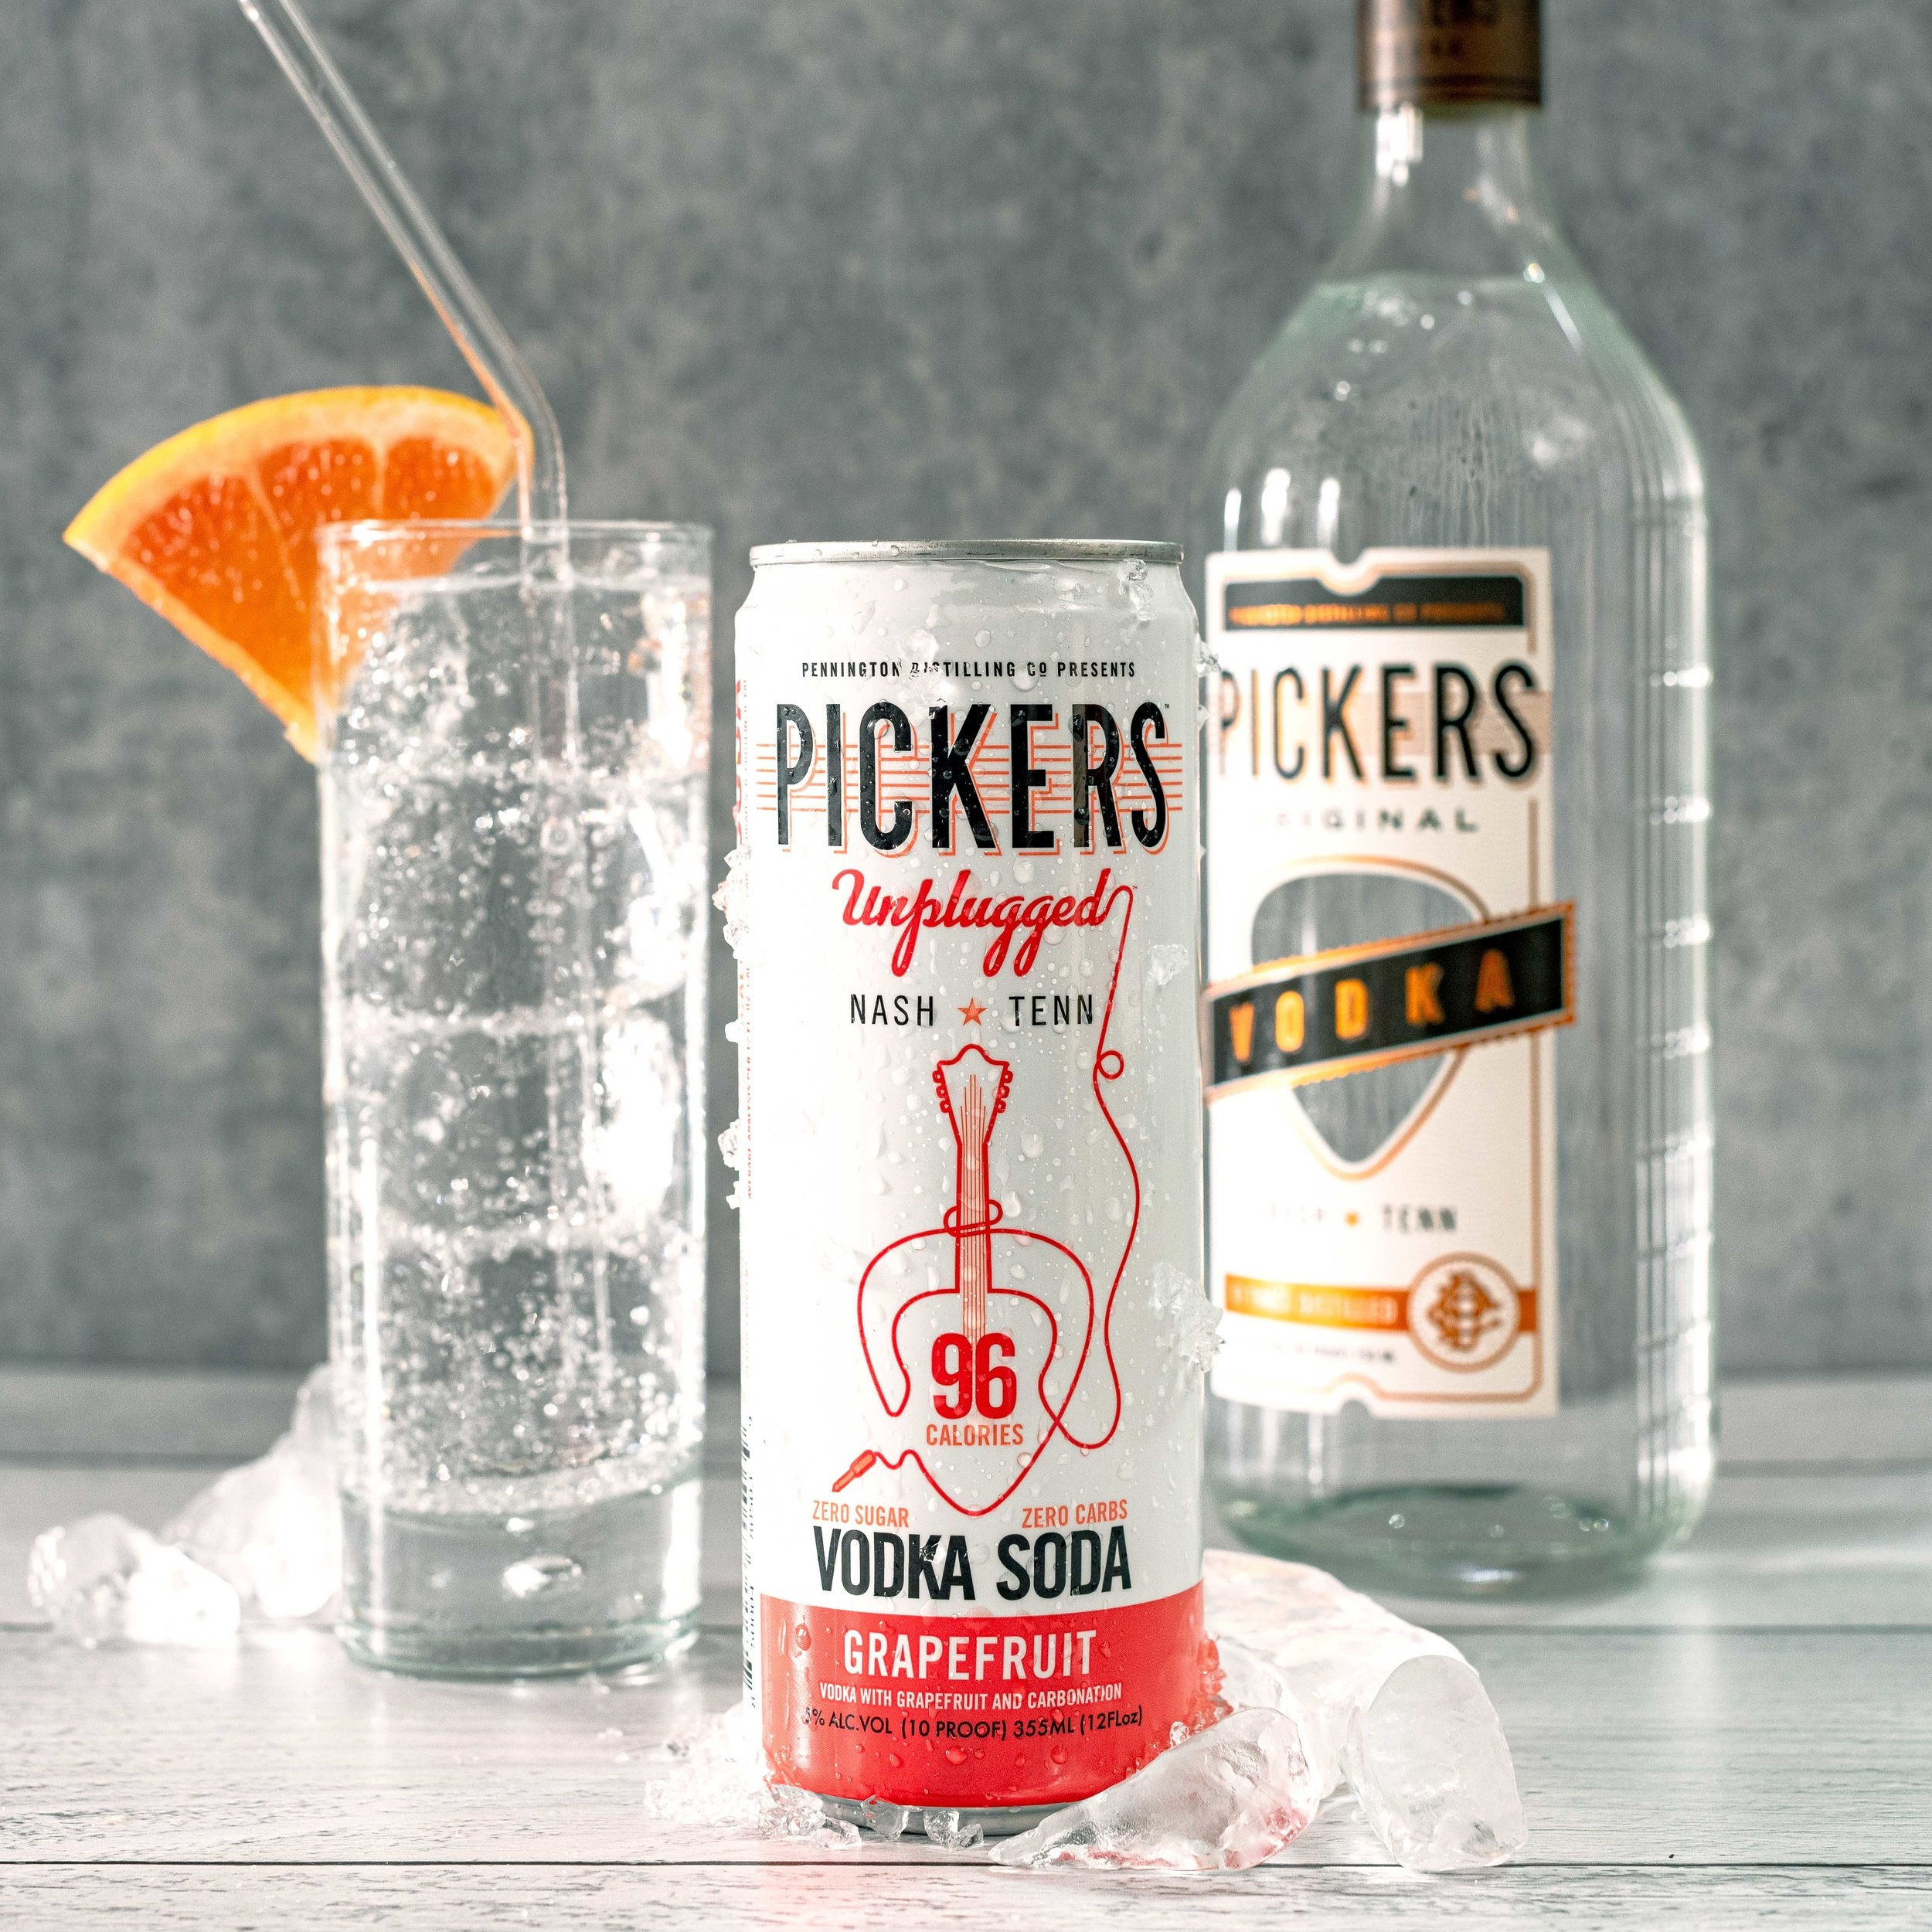 Grapefruit Vodka Soda - Pickers Vodka and sparkling water with a hint of natural Grapefruit flavor.